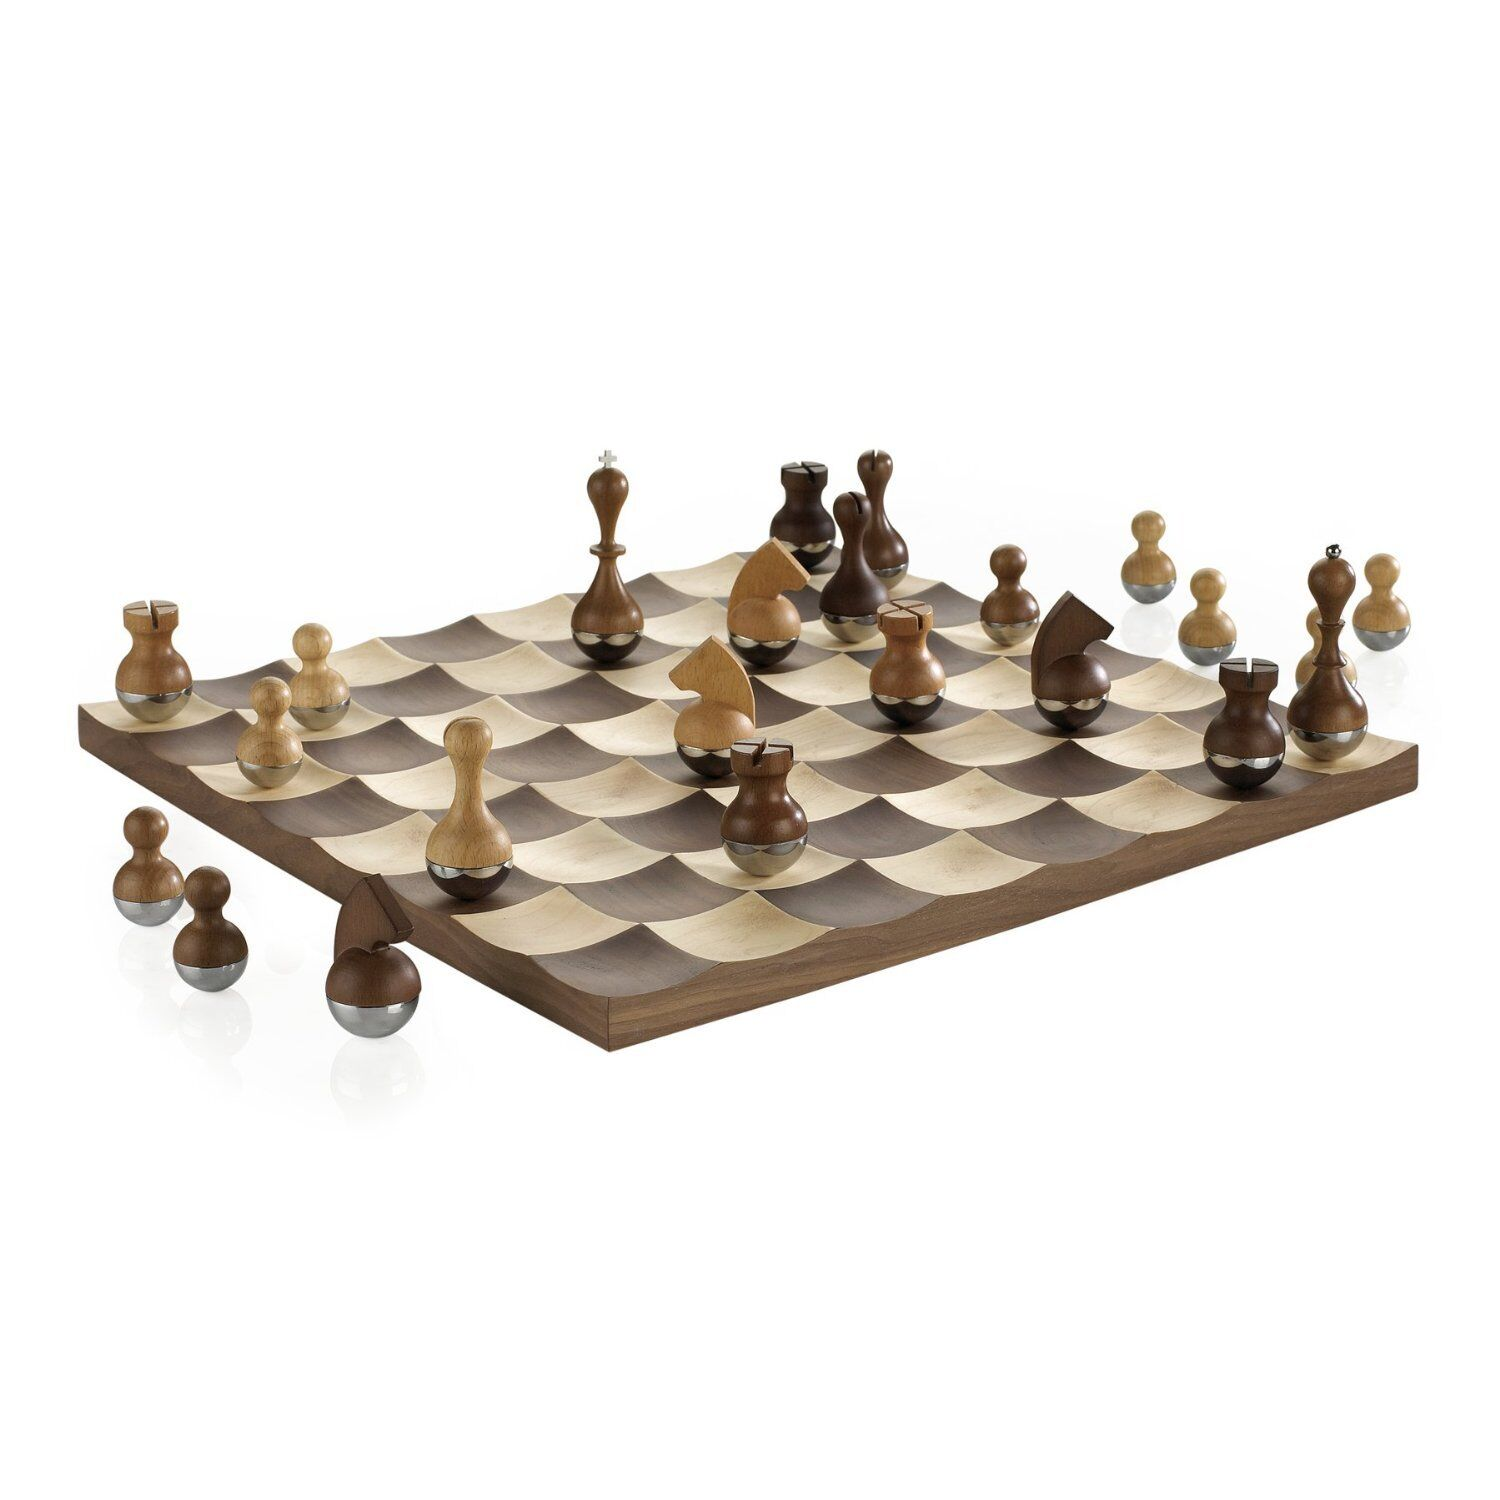 Umbra Wobble Chess Set w Wooden Curvy Pieces & Board Modern Game Collectors Gift